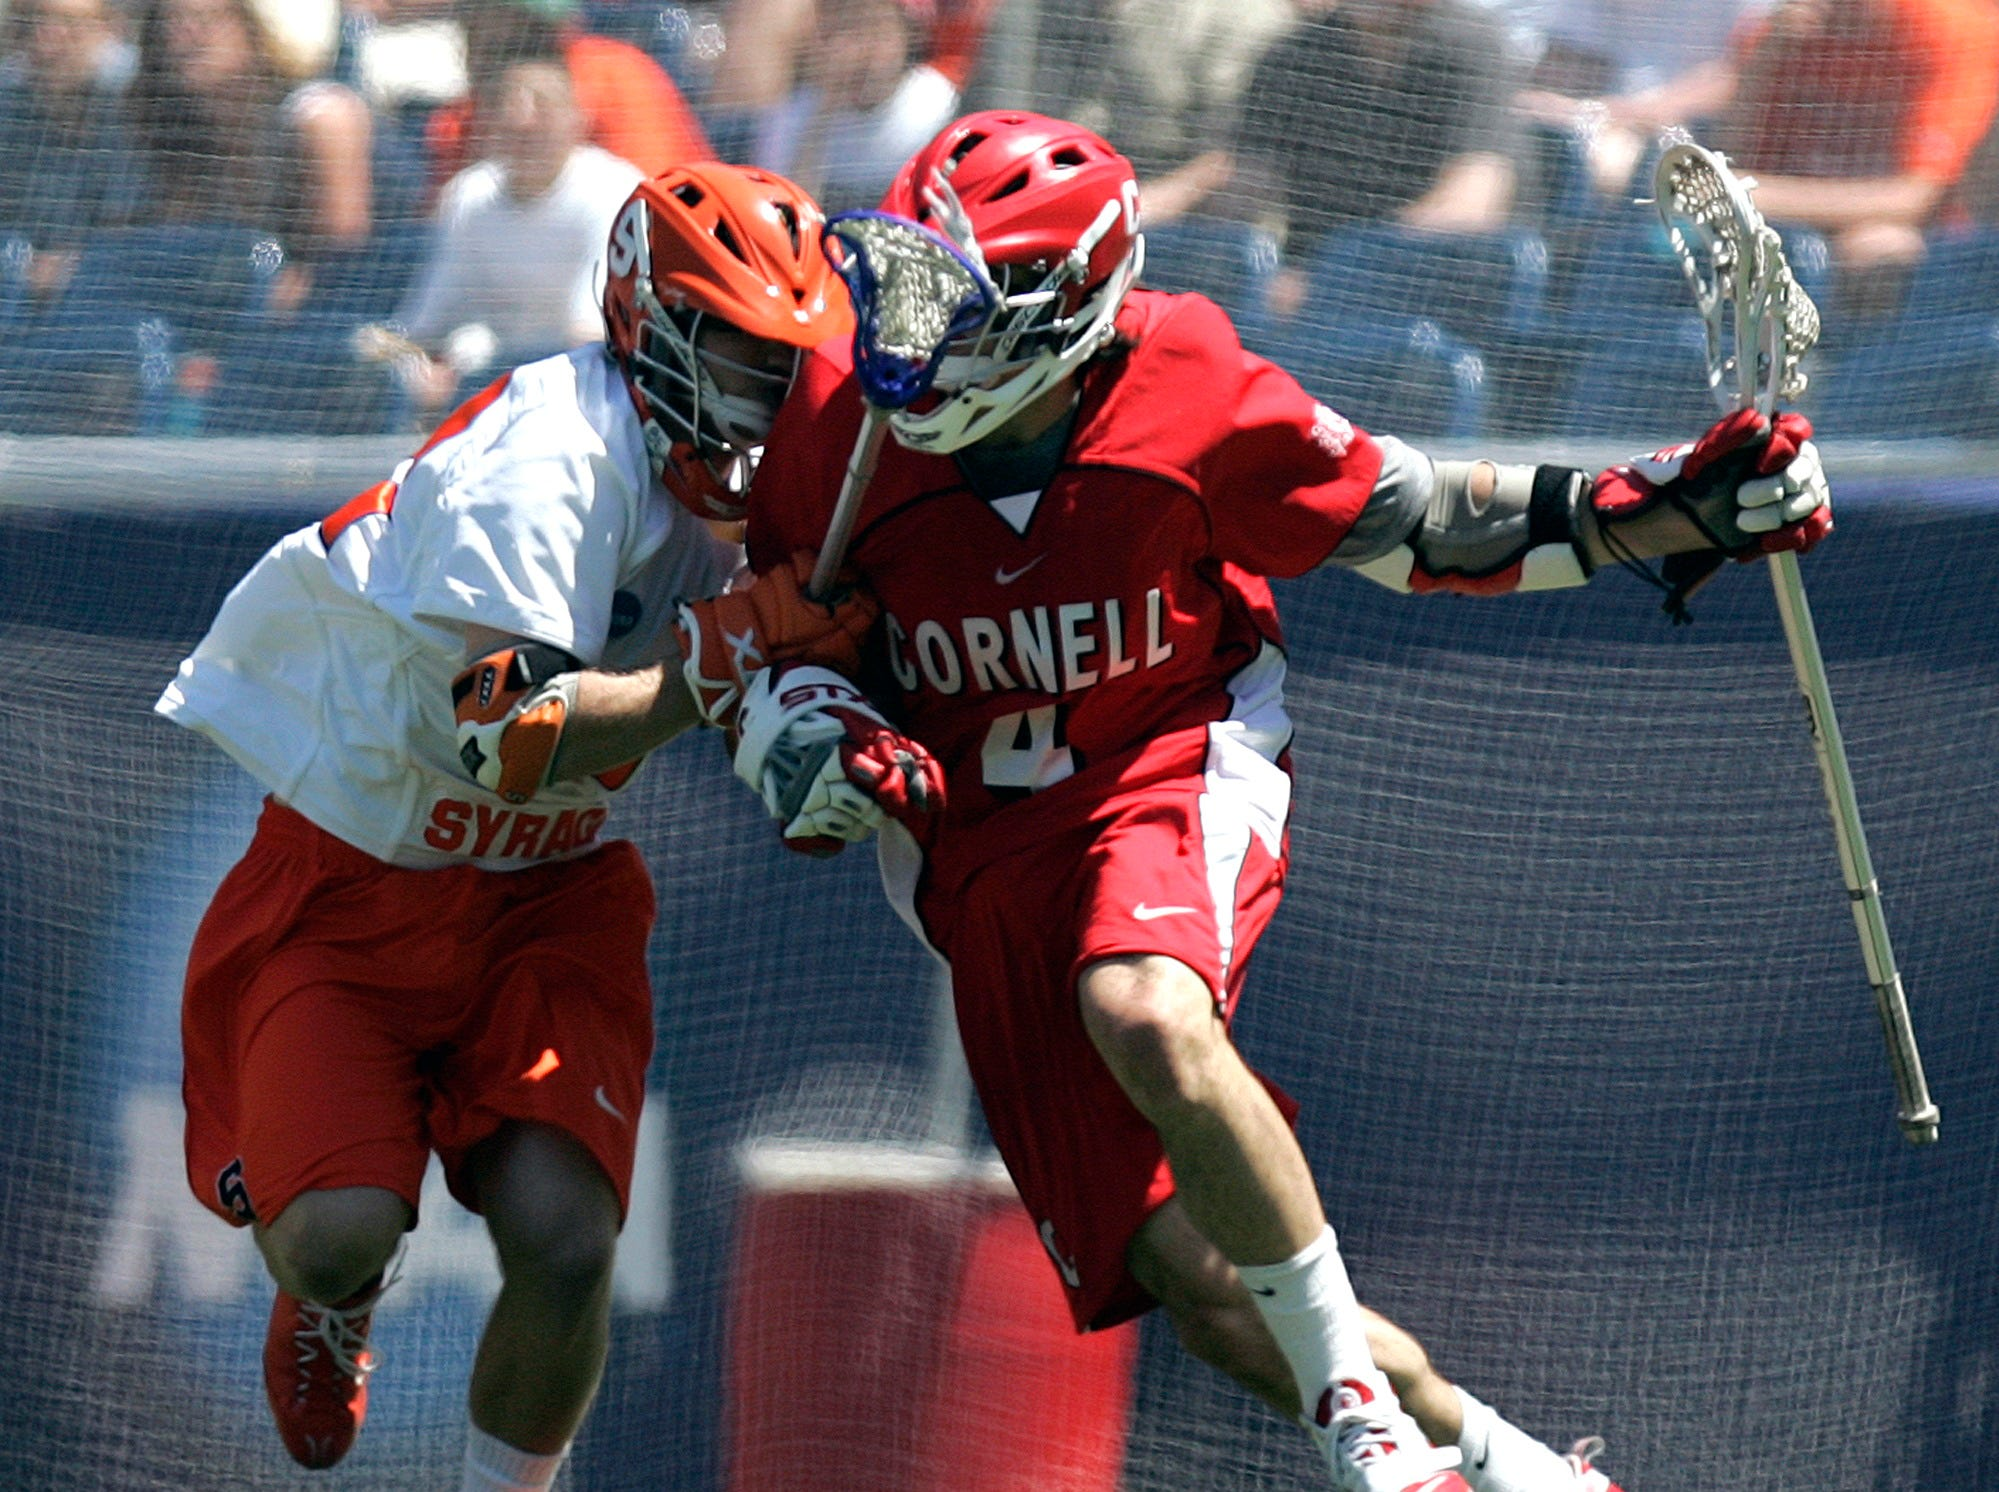 Syracuse's Tim Harder, left, and Cornell's Christopher Ritchie go head-to-head in the second quarter of an NCAA Division 1 Men's lacrosse championship game in Foxborough, Mass., Monday, May 25, 2009.